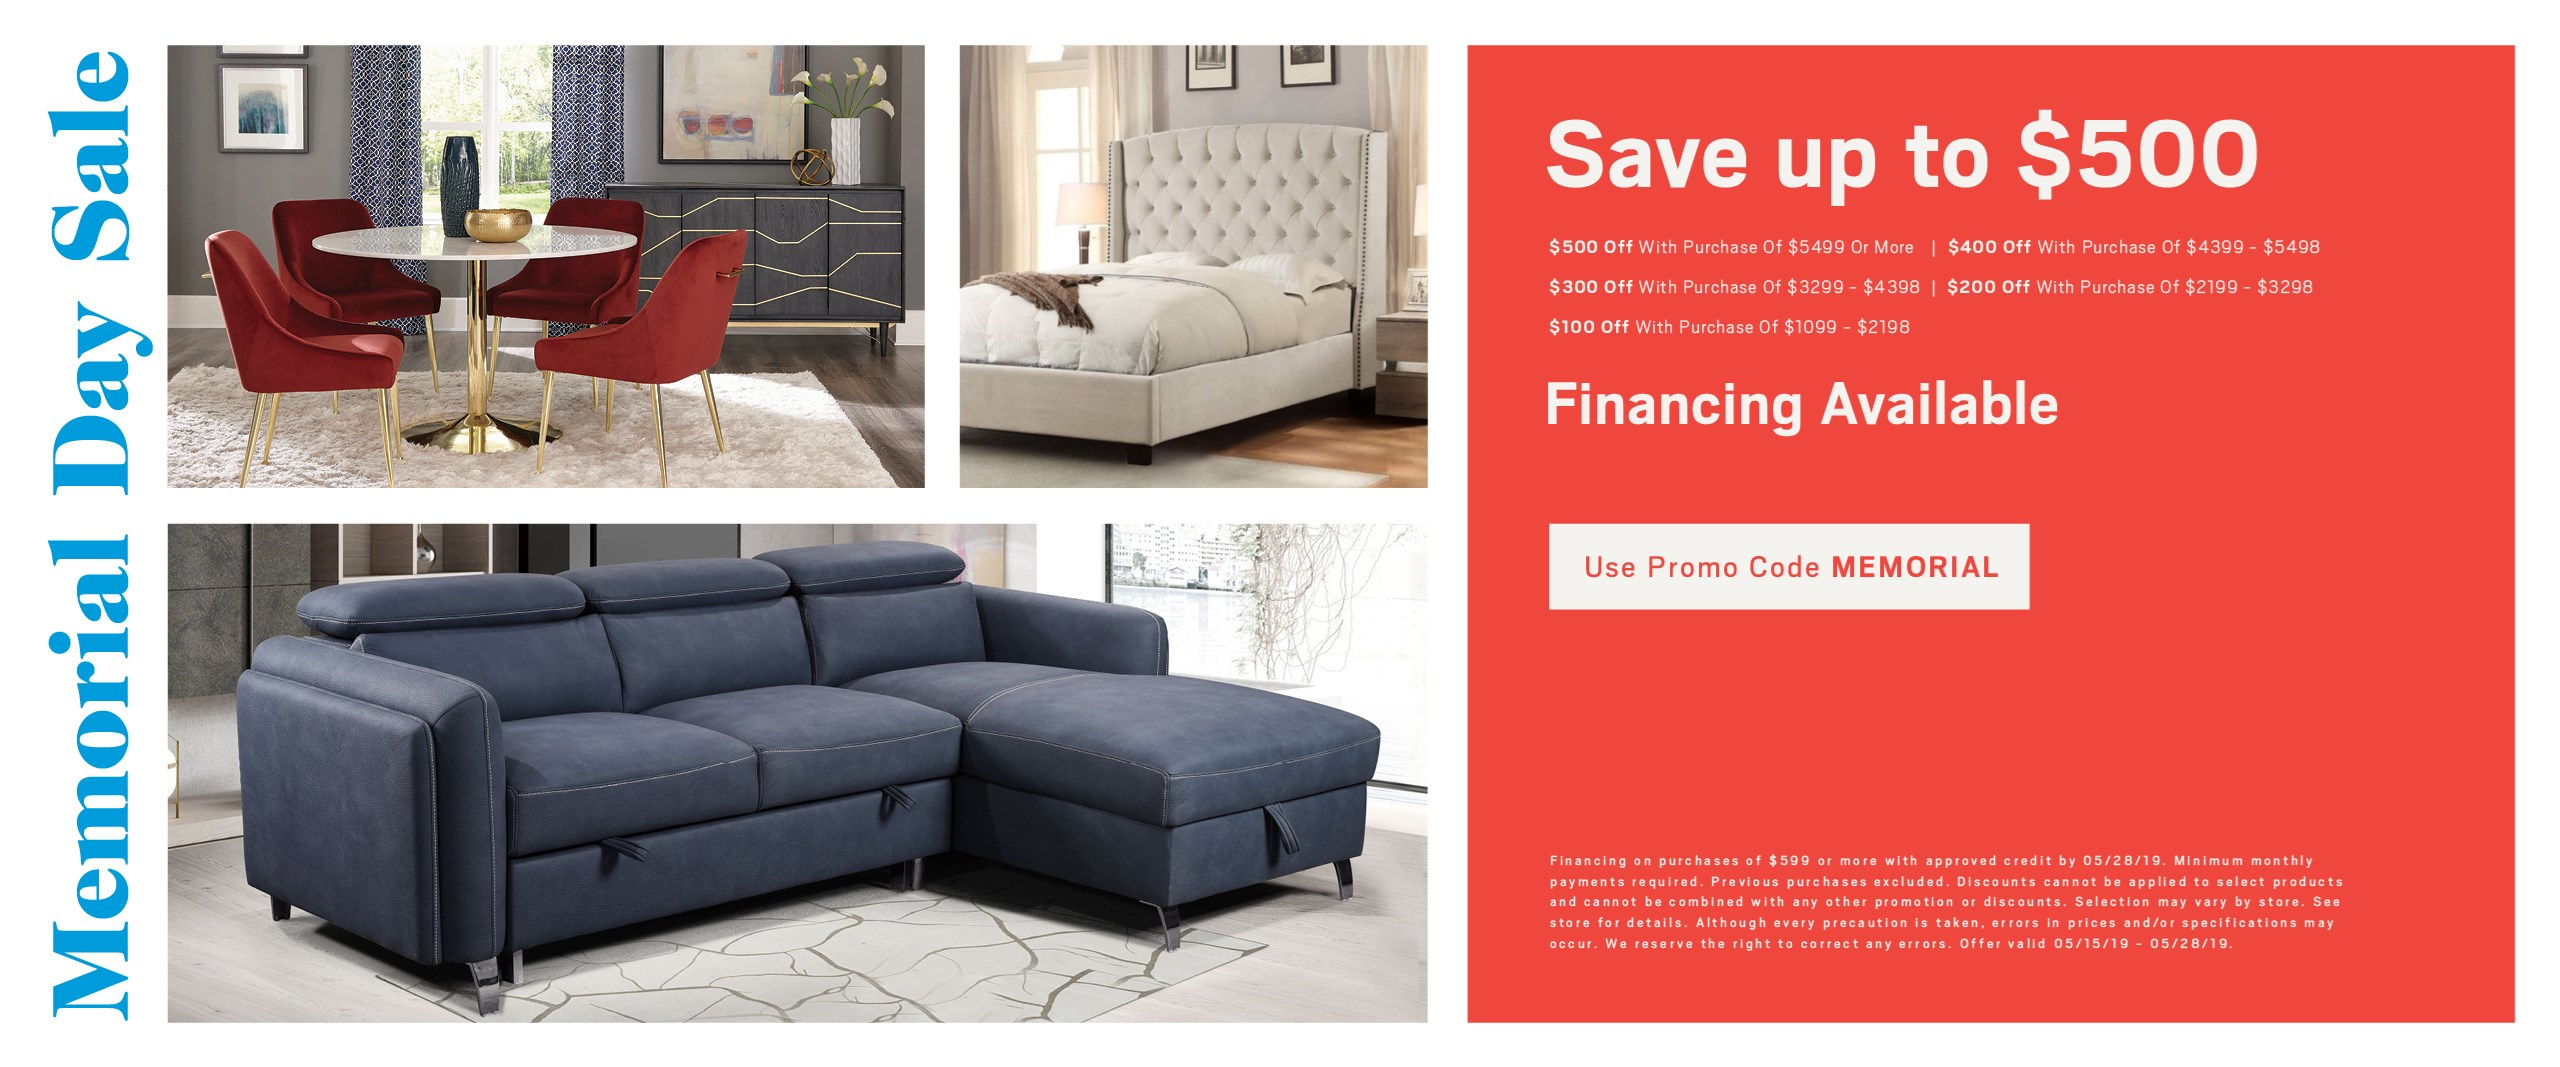 Save up to $500; ask about financing. Use promo code MEMORIAL. See store for details.